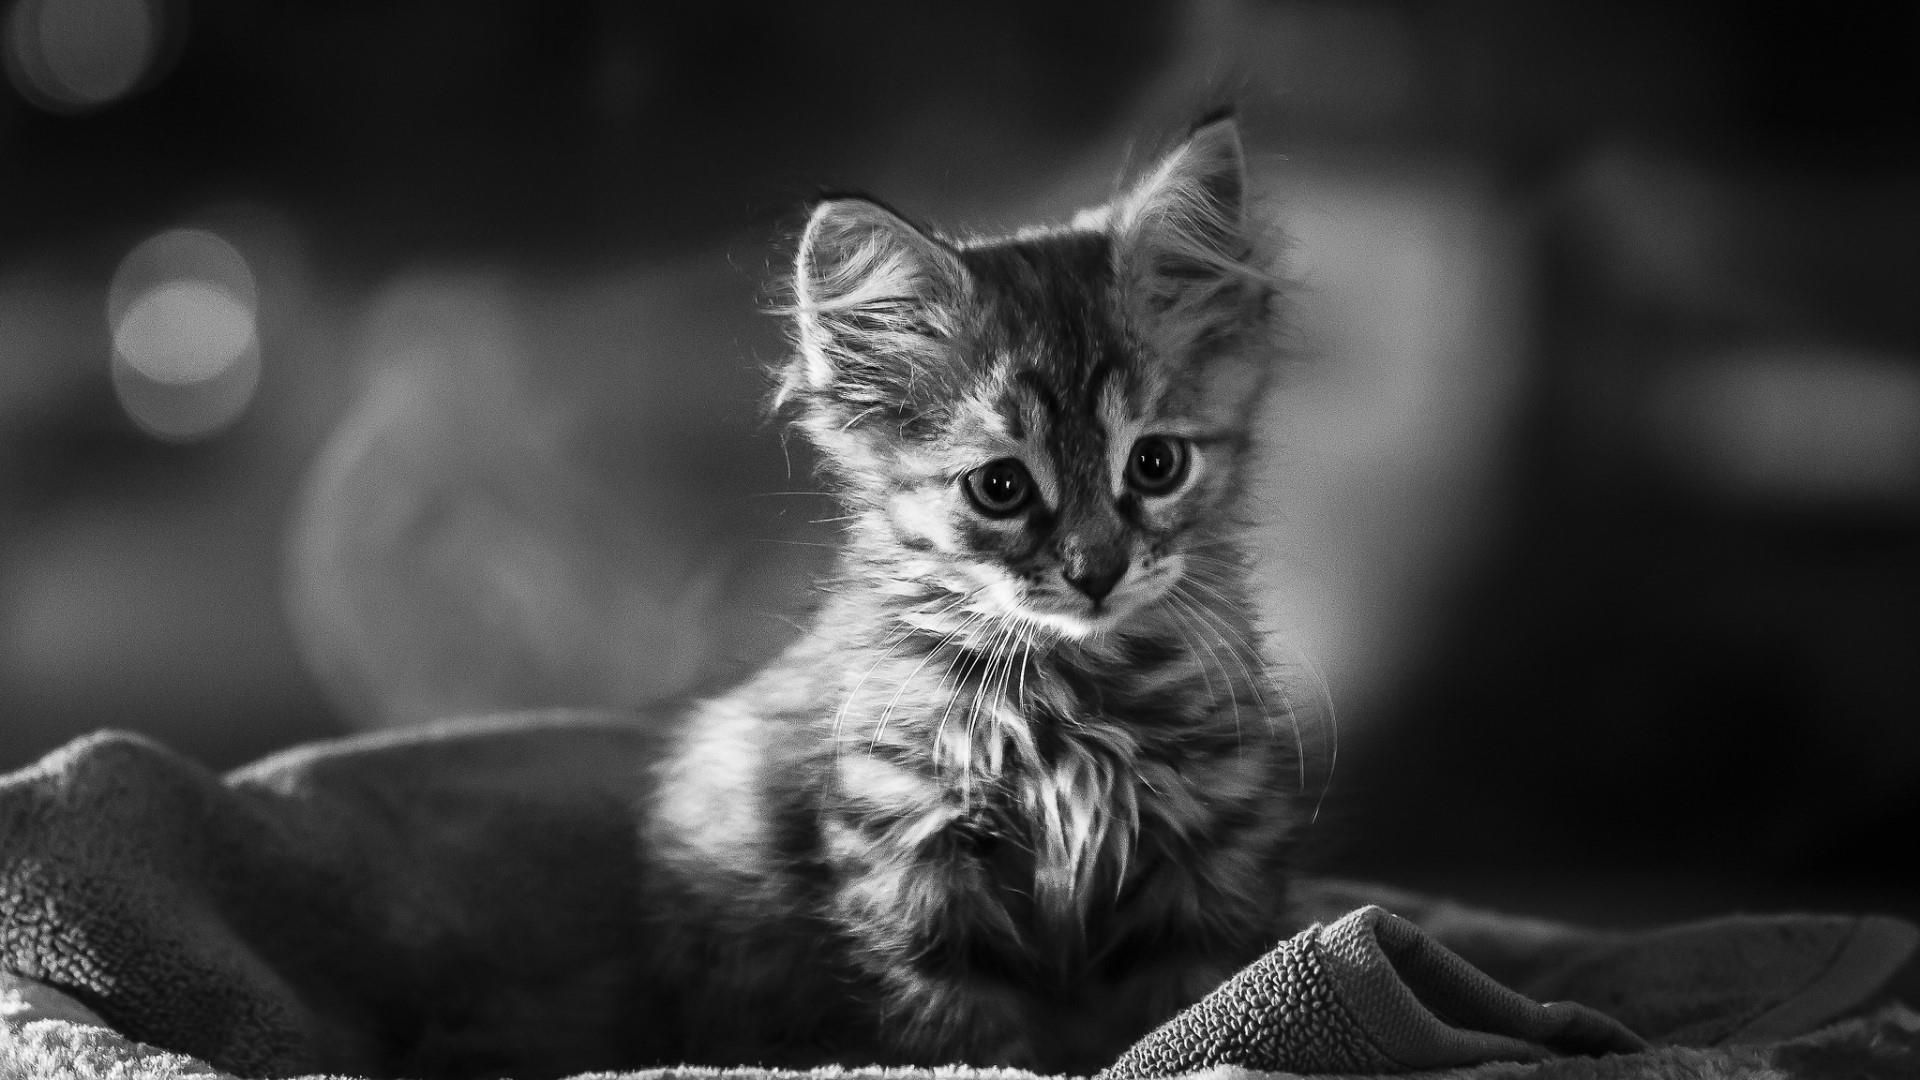 Cute Black And White hd wallpaper for laptop